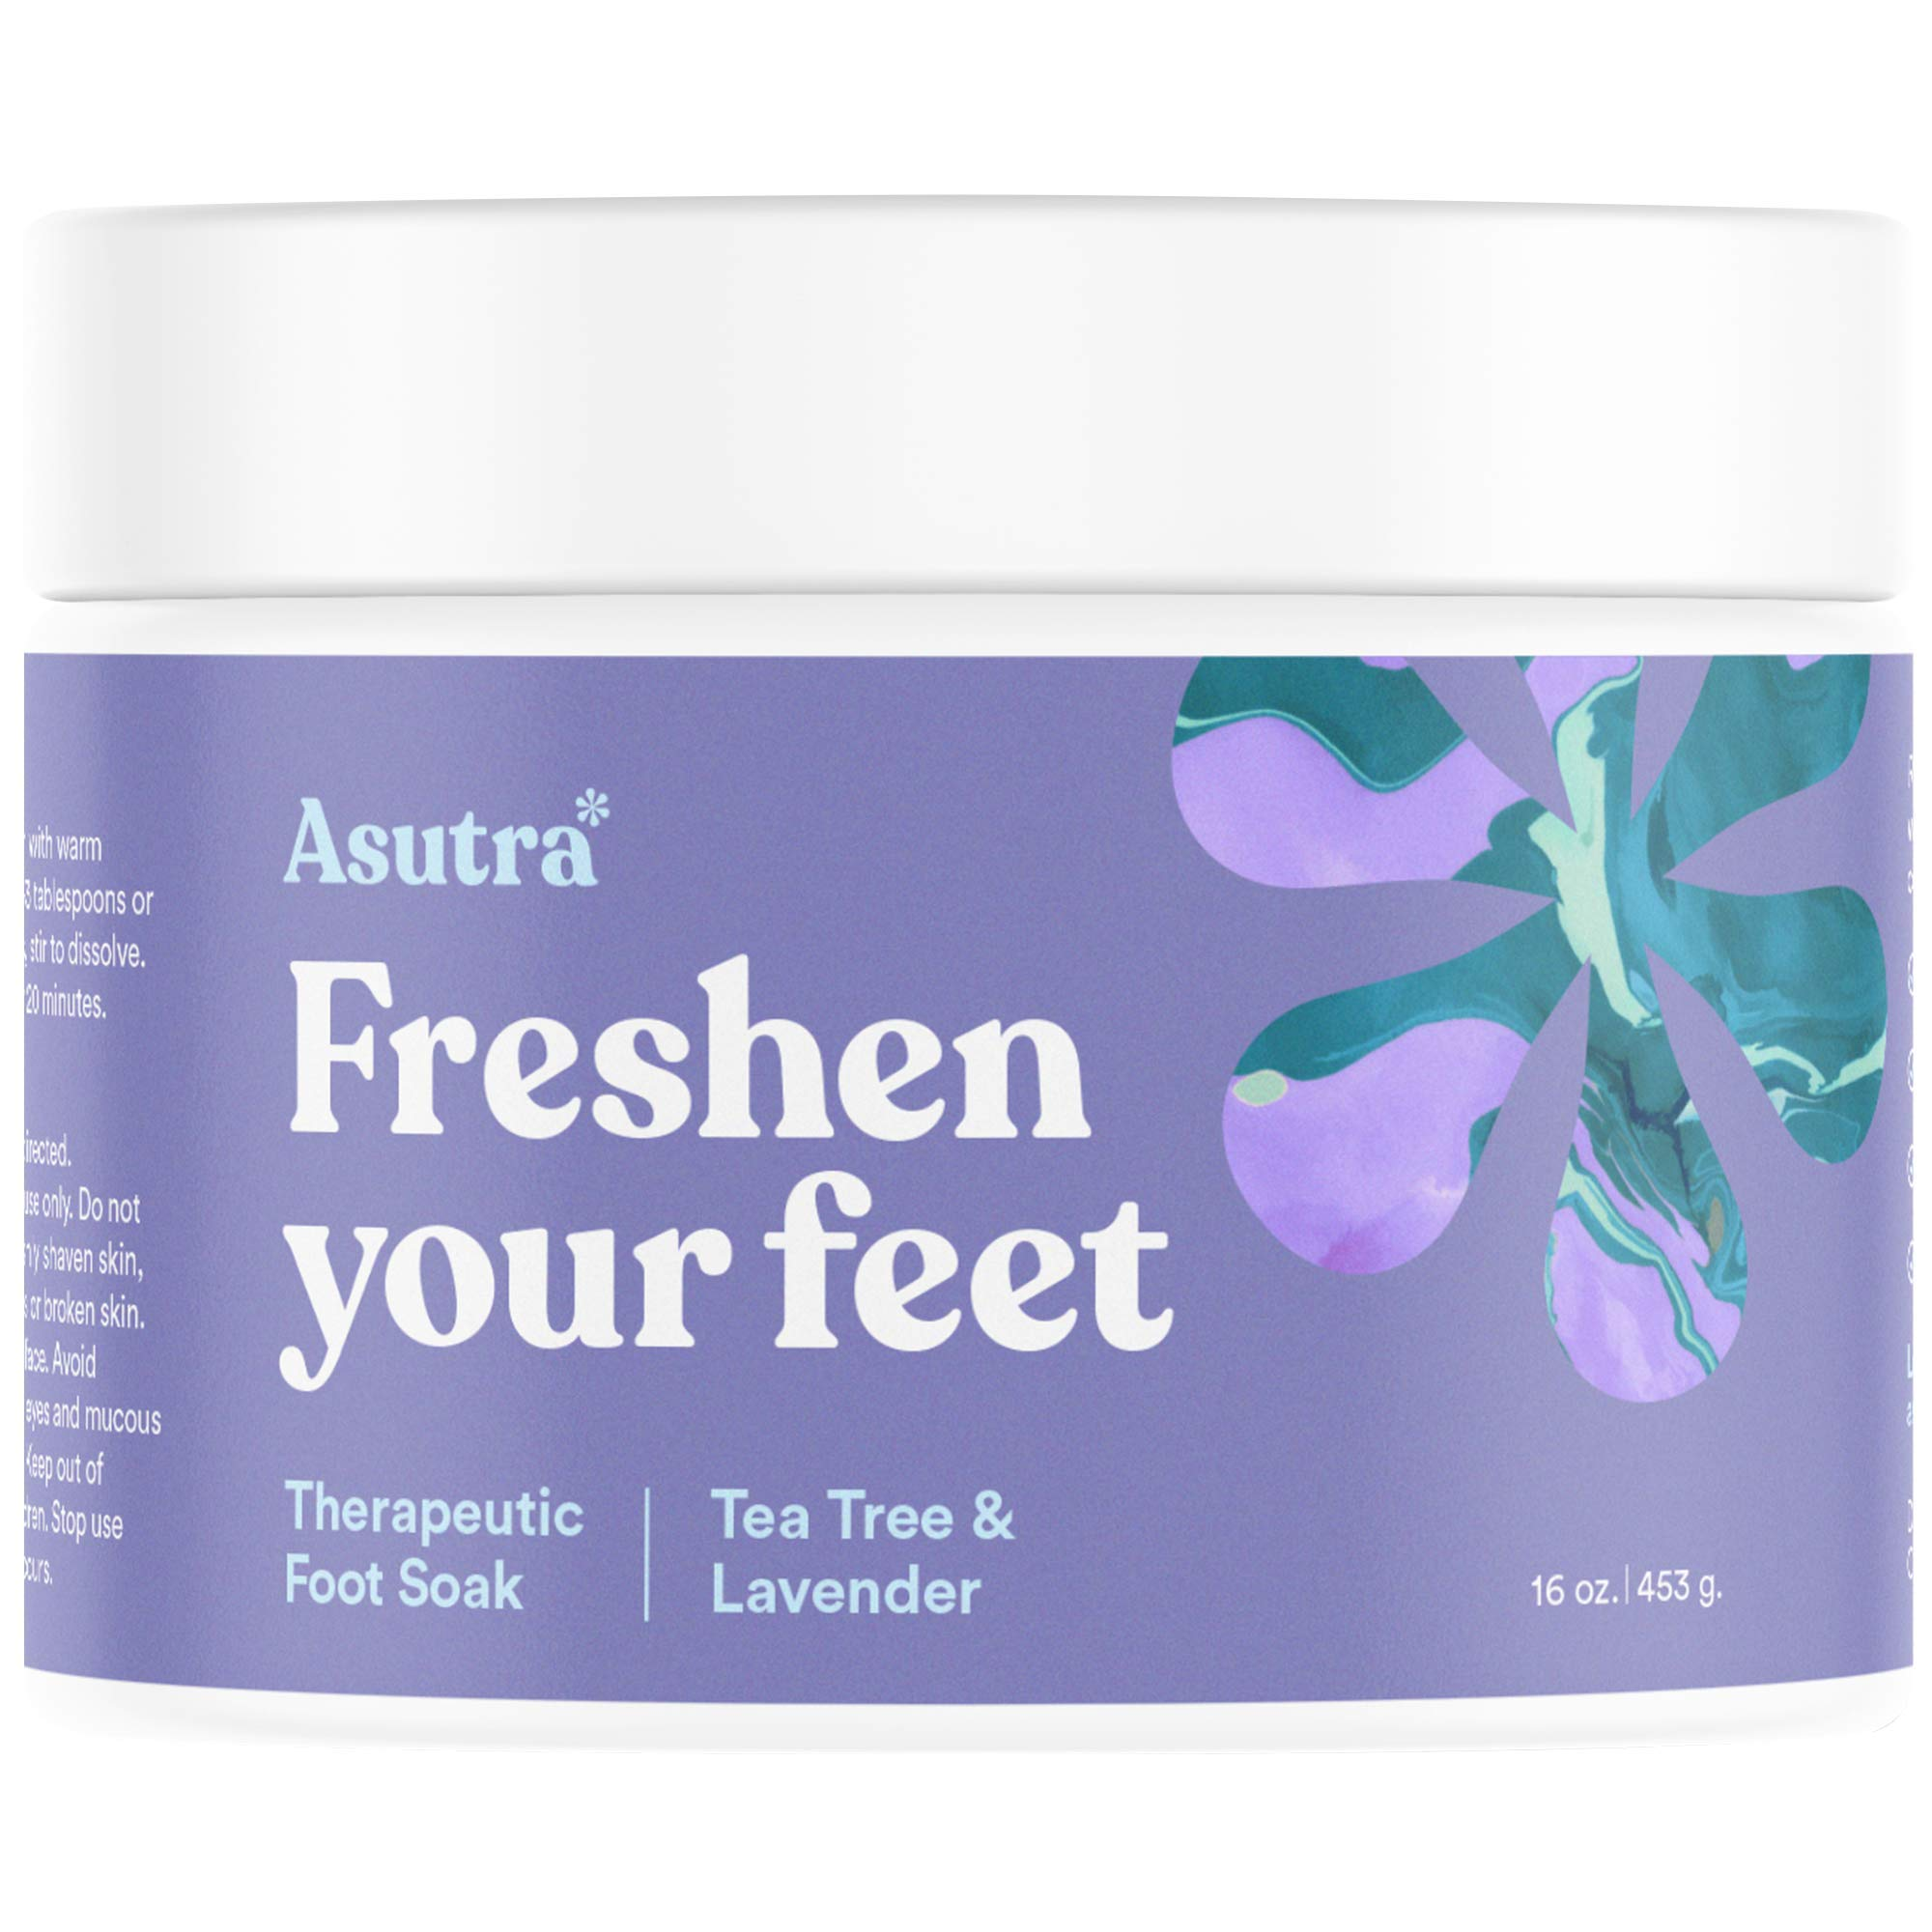 Apologise, but, squirt foot beauty beauty heaven recommend